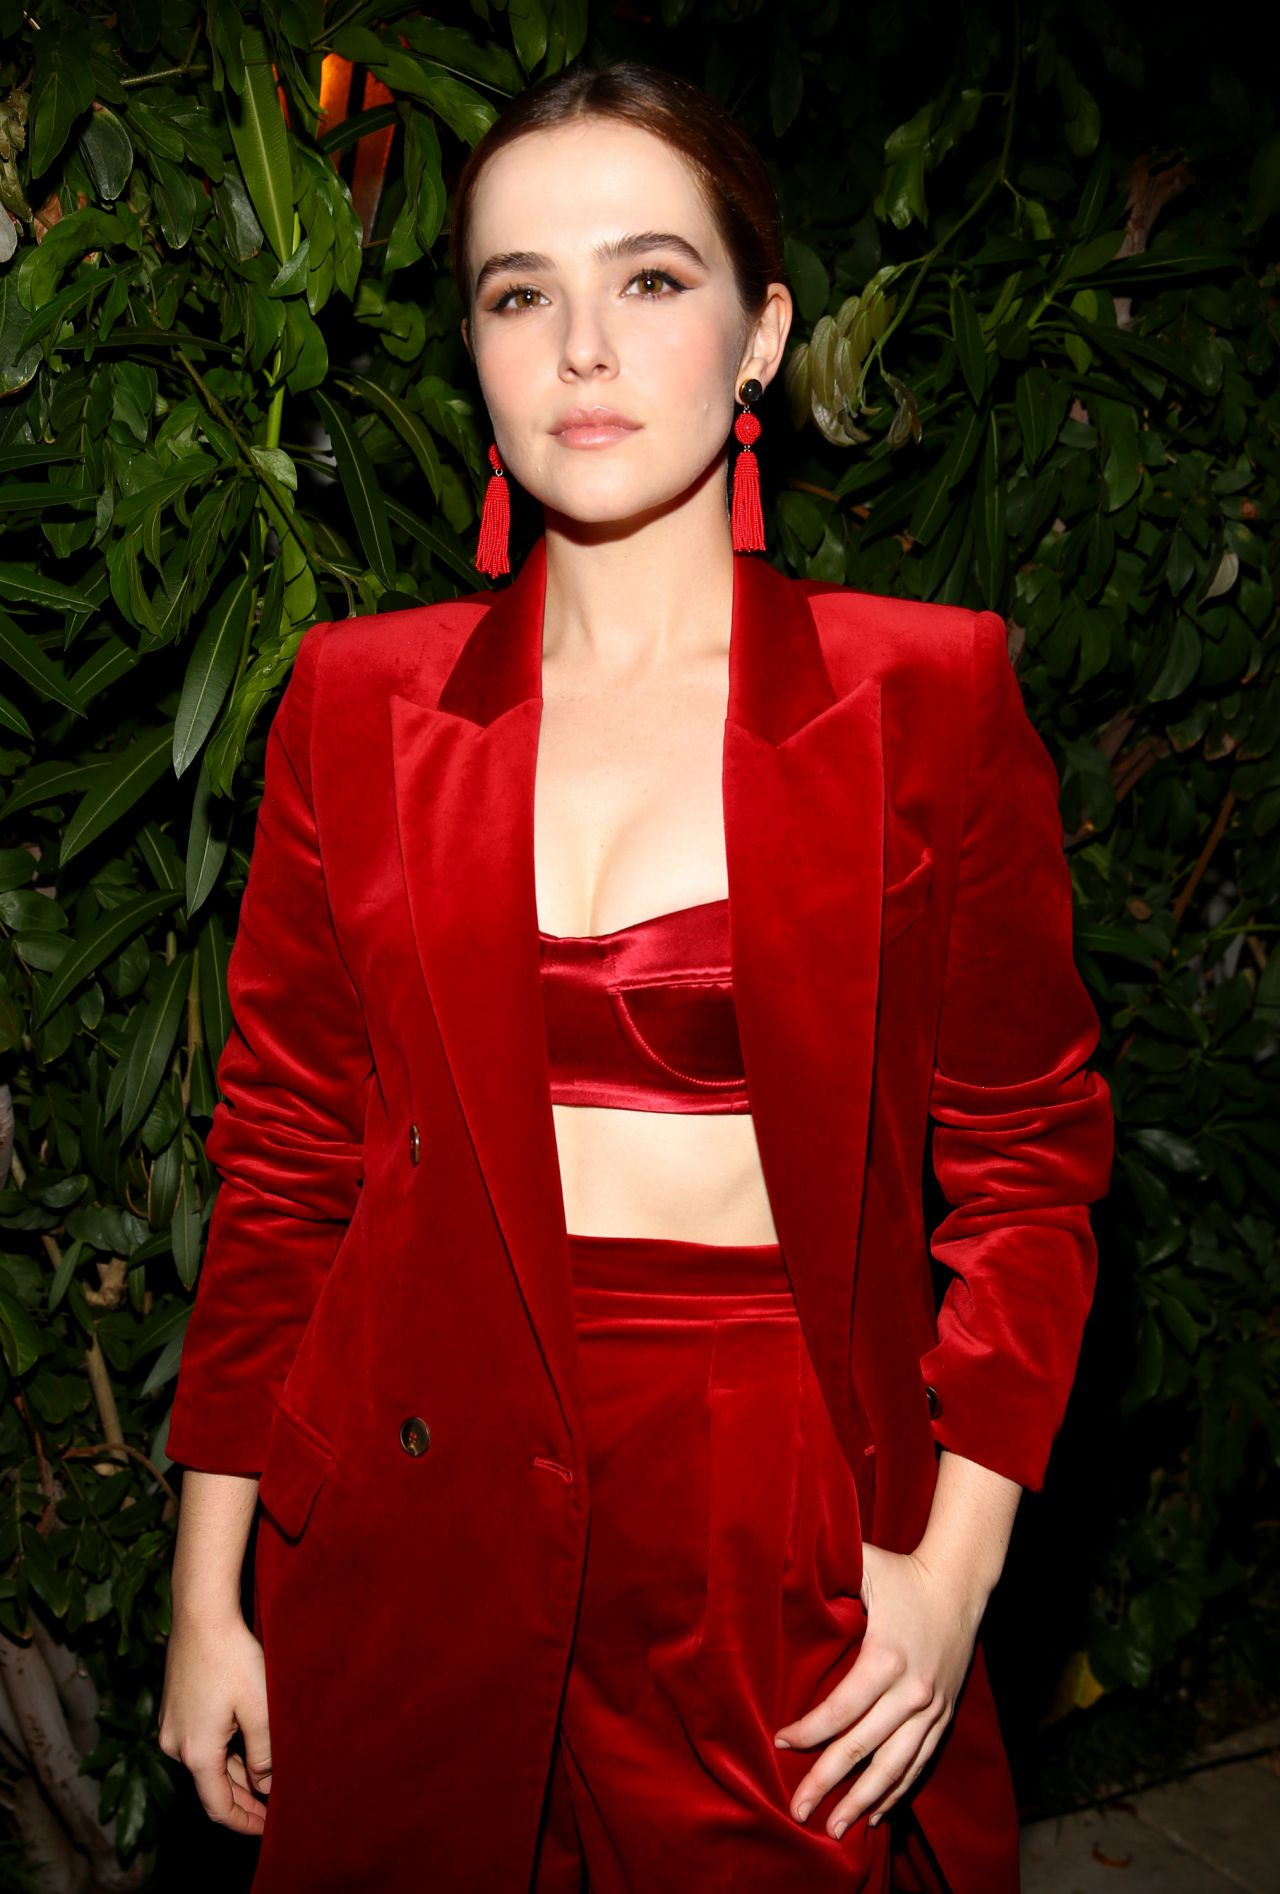 zoey deutch - photo #29